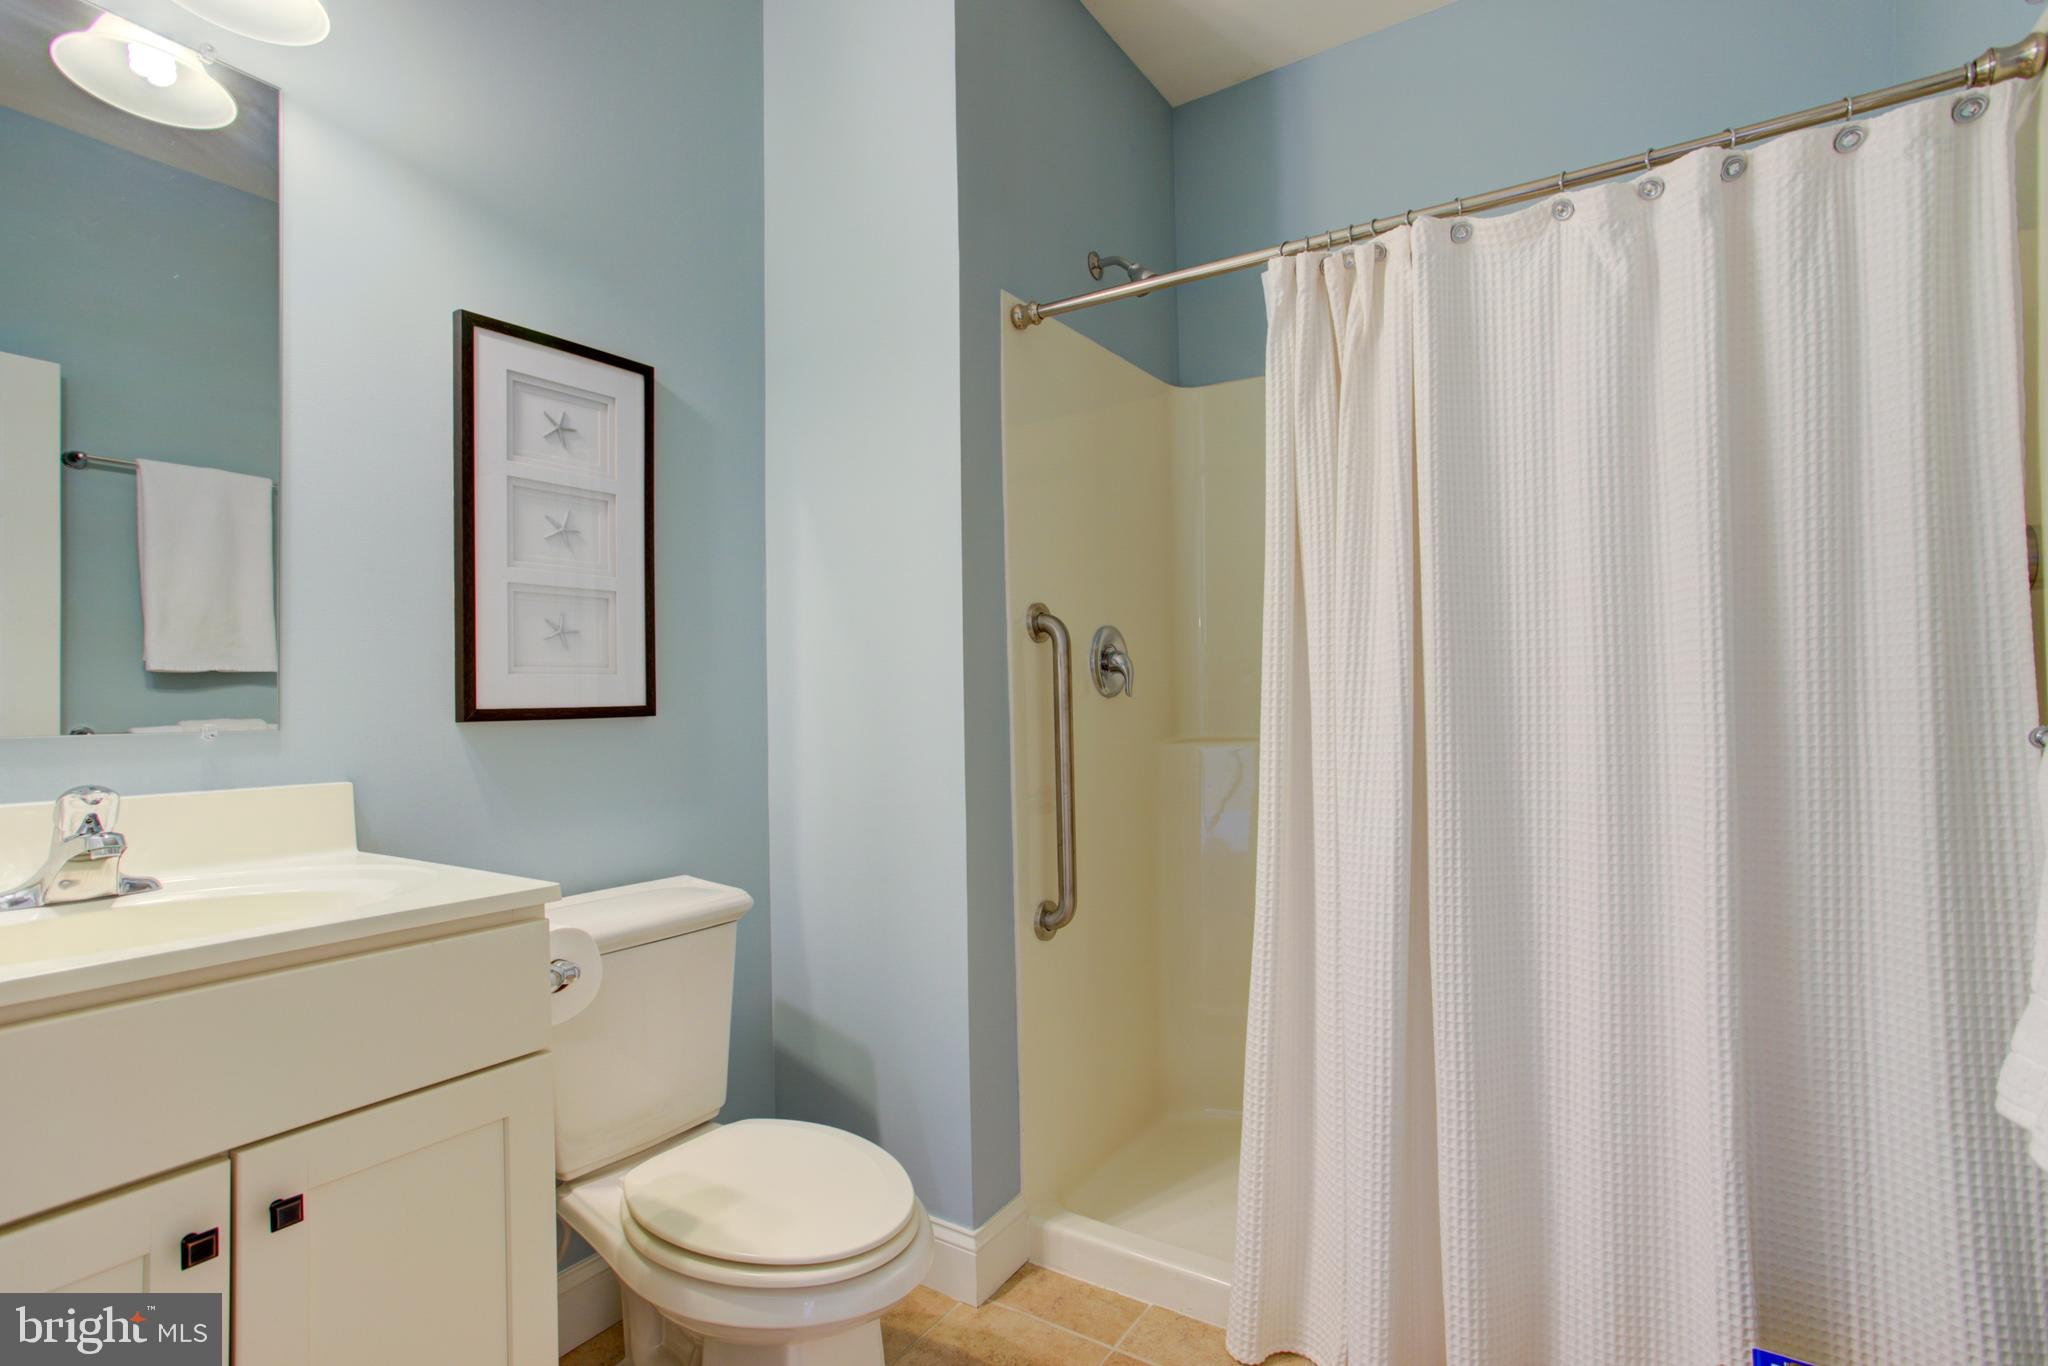 1st floor bath - Large shower stall with grab rail